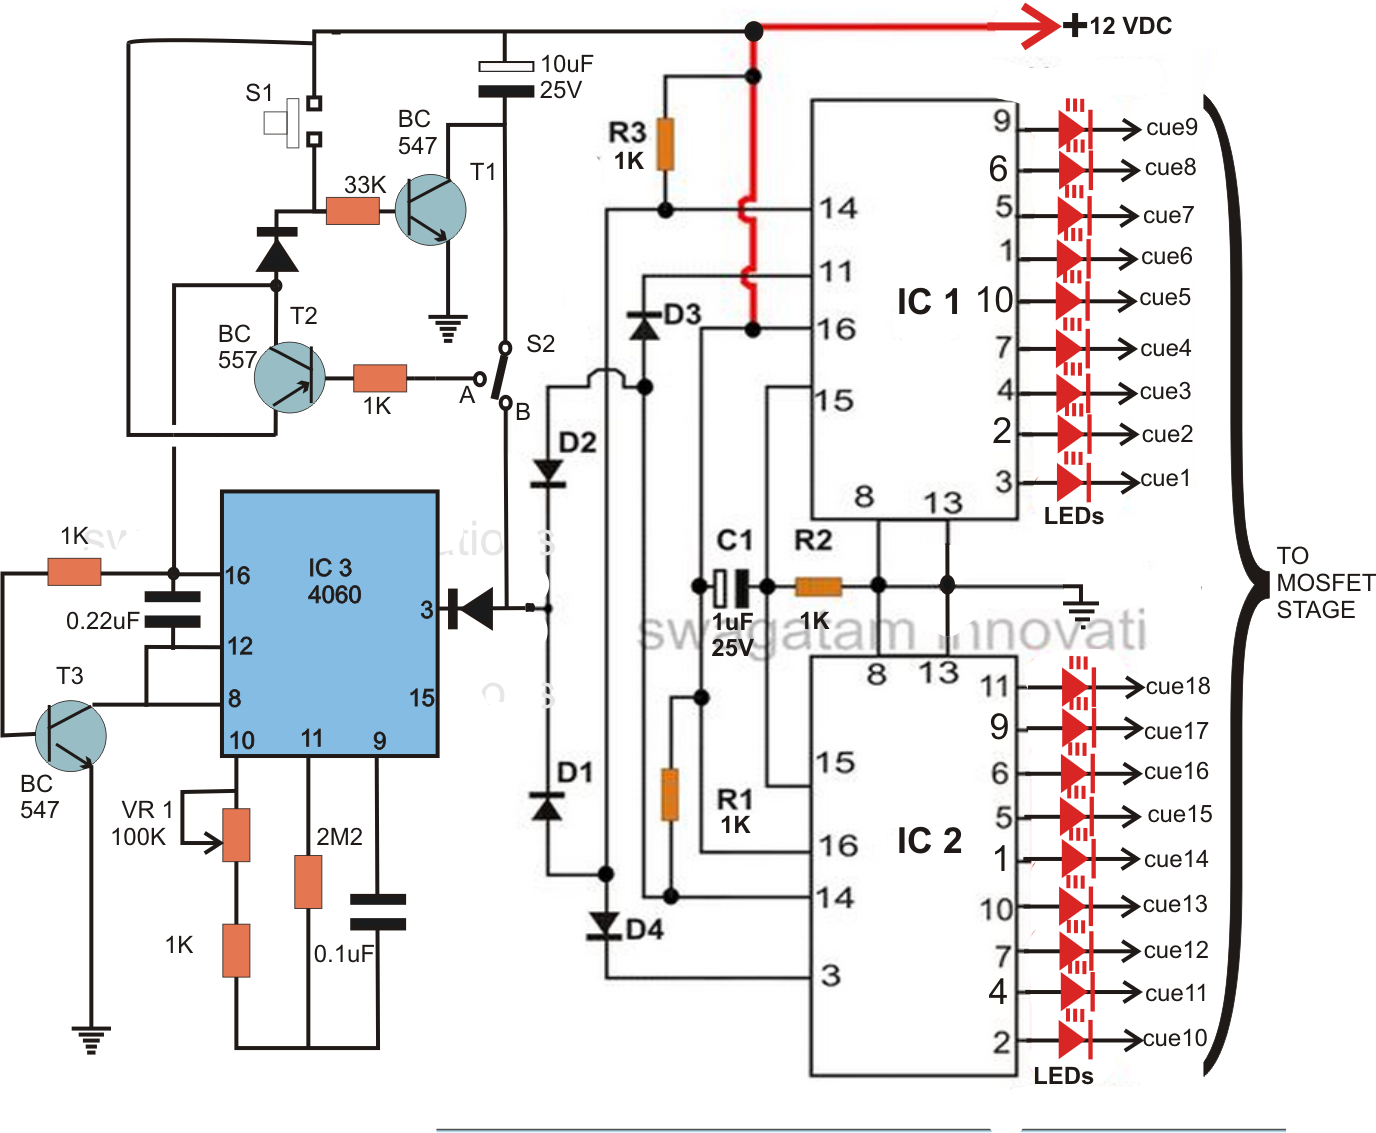 audio switch schematic html with How To Build Pyro Ignition Circuit on Guide To Car Stereo Wiring Harnesses additionally 43395 Asus Sabertooth P67 B3 Sandy Bridge Motherboard Review 6 as well How To Build Pyro Ignition Circuit furthermore Ecl82 Tube besides Car Anti Theft Protection With Buzzer.